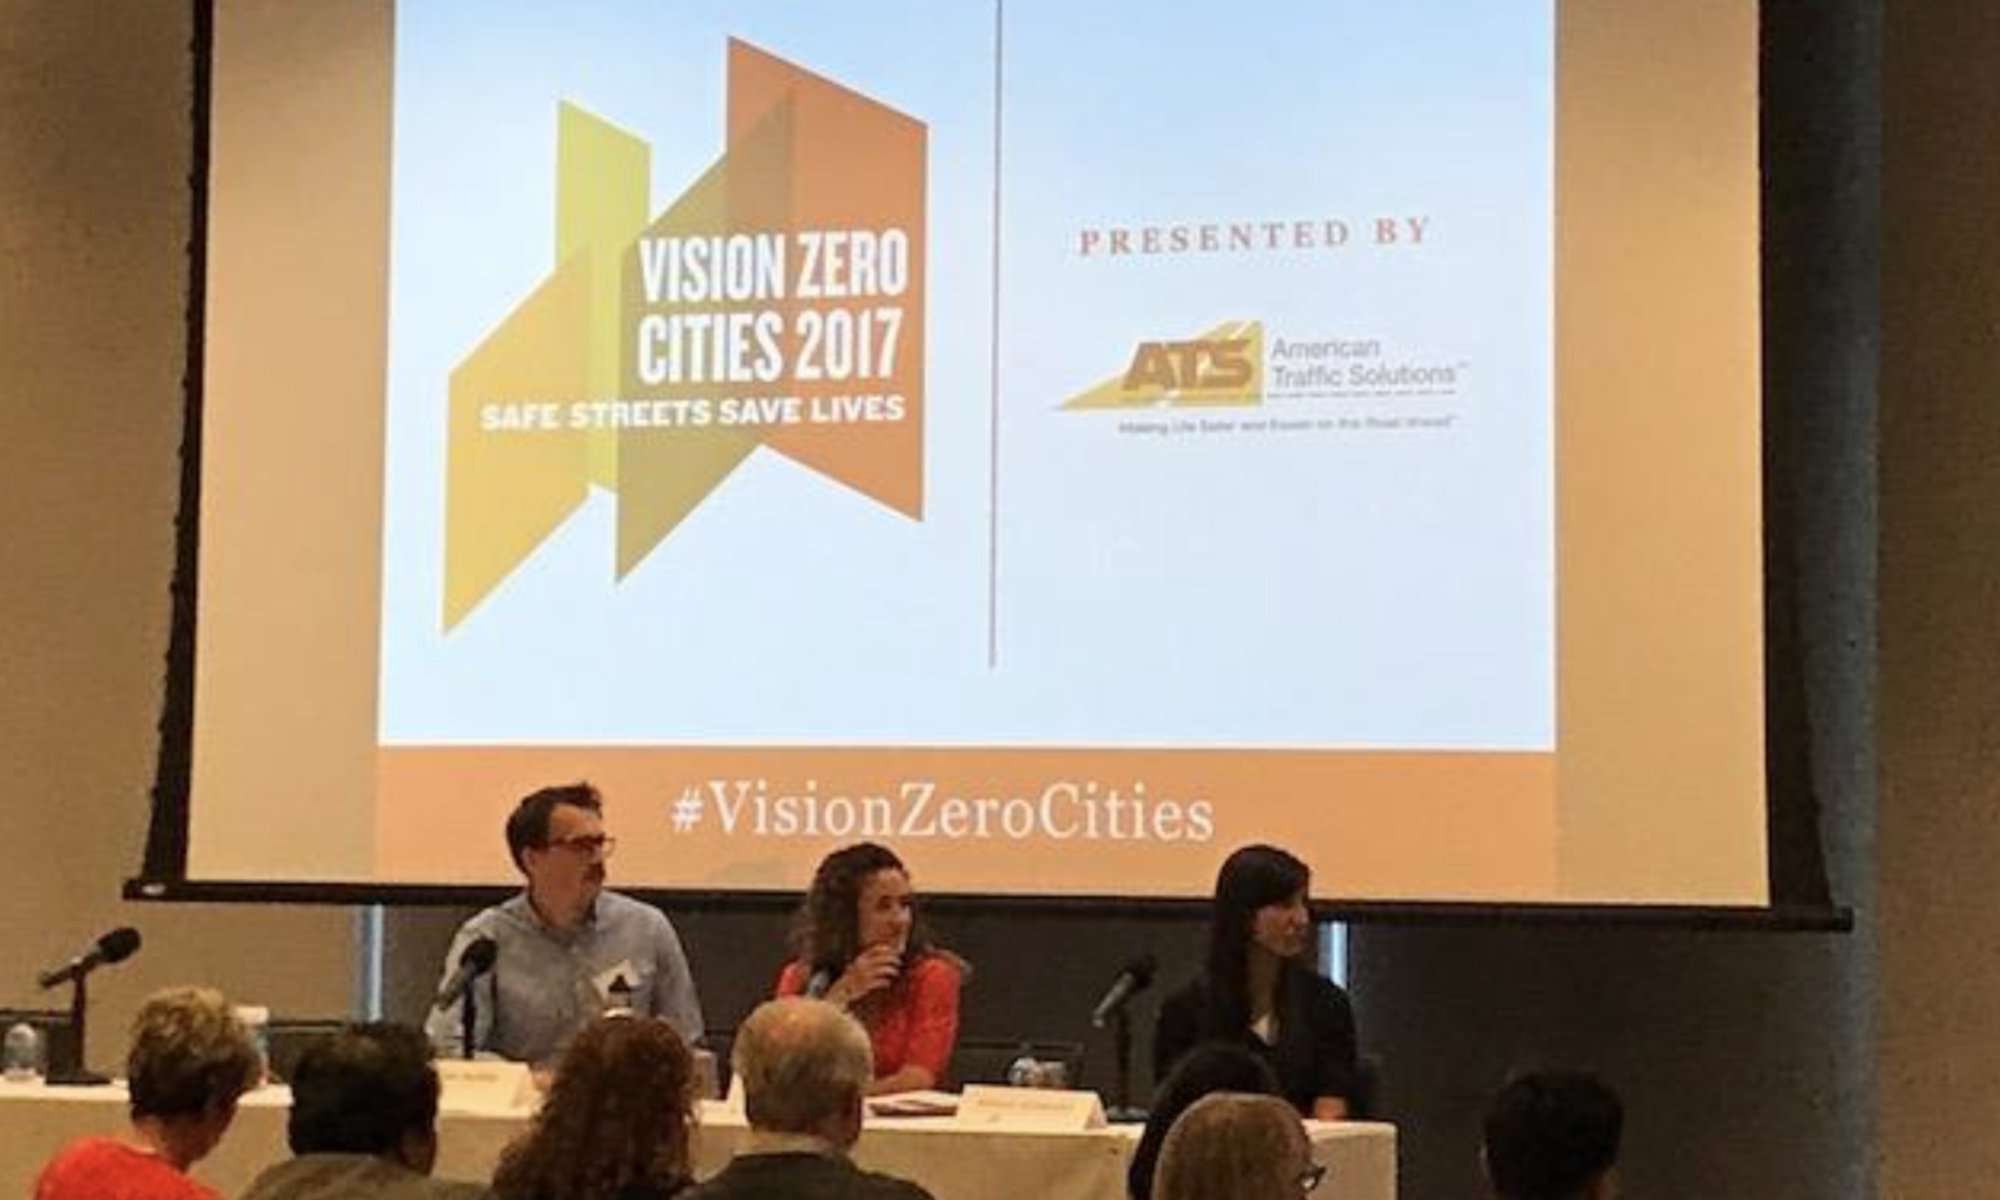 Image of panel from 2017 Vision Zero Cities conference